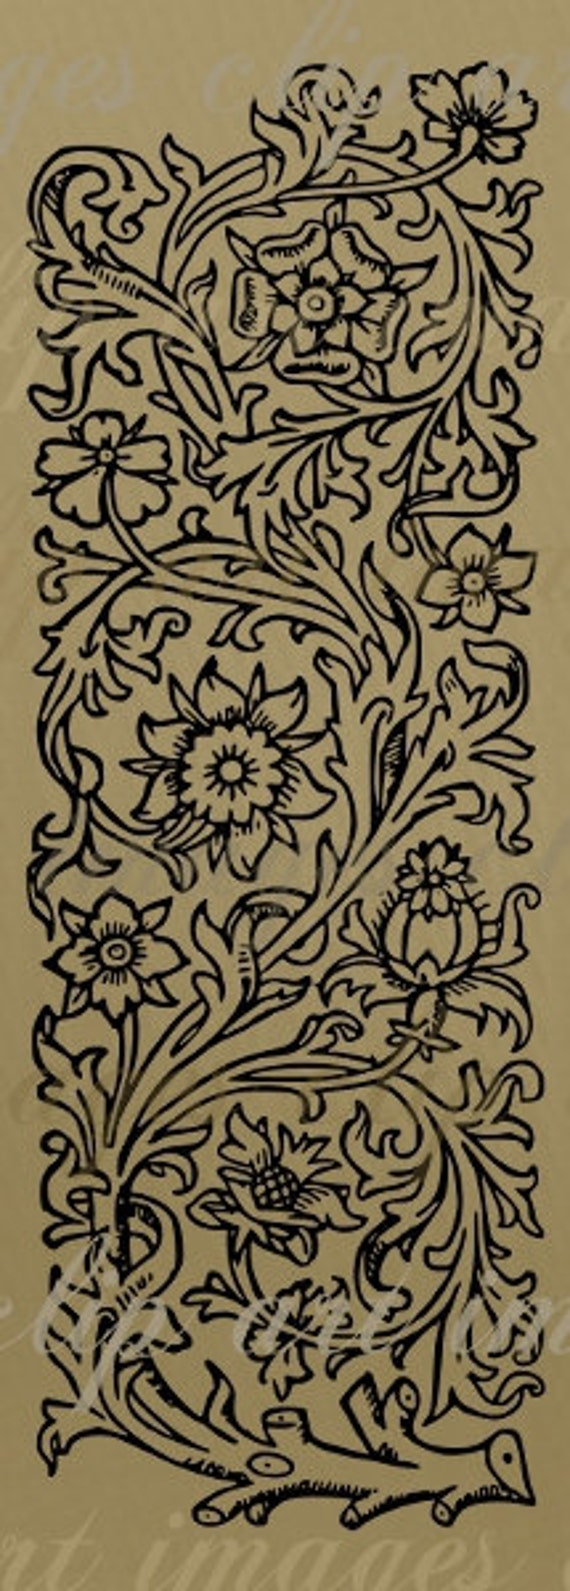 Floral Panel no.2 Clip Art, digital designers tool, png and scalable vector art ROYALTY FREE